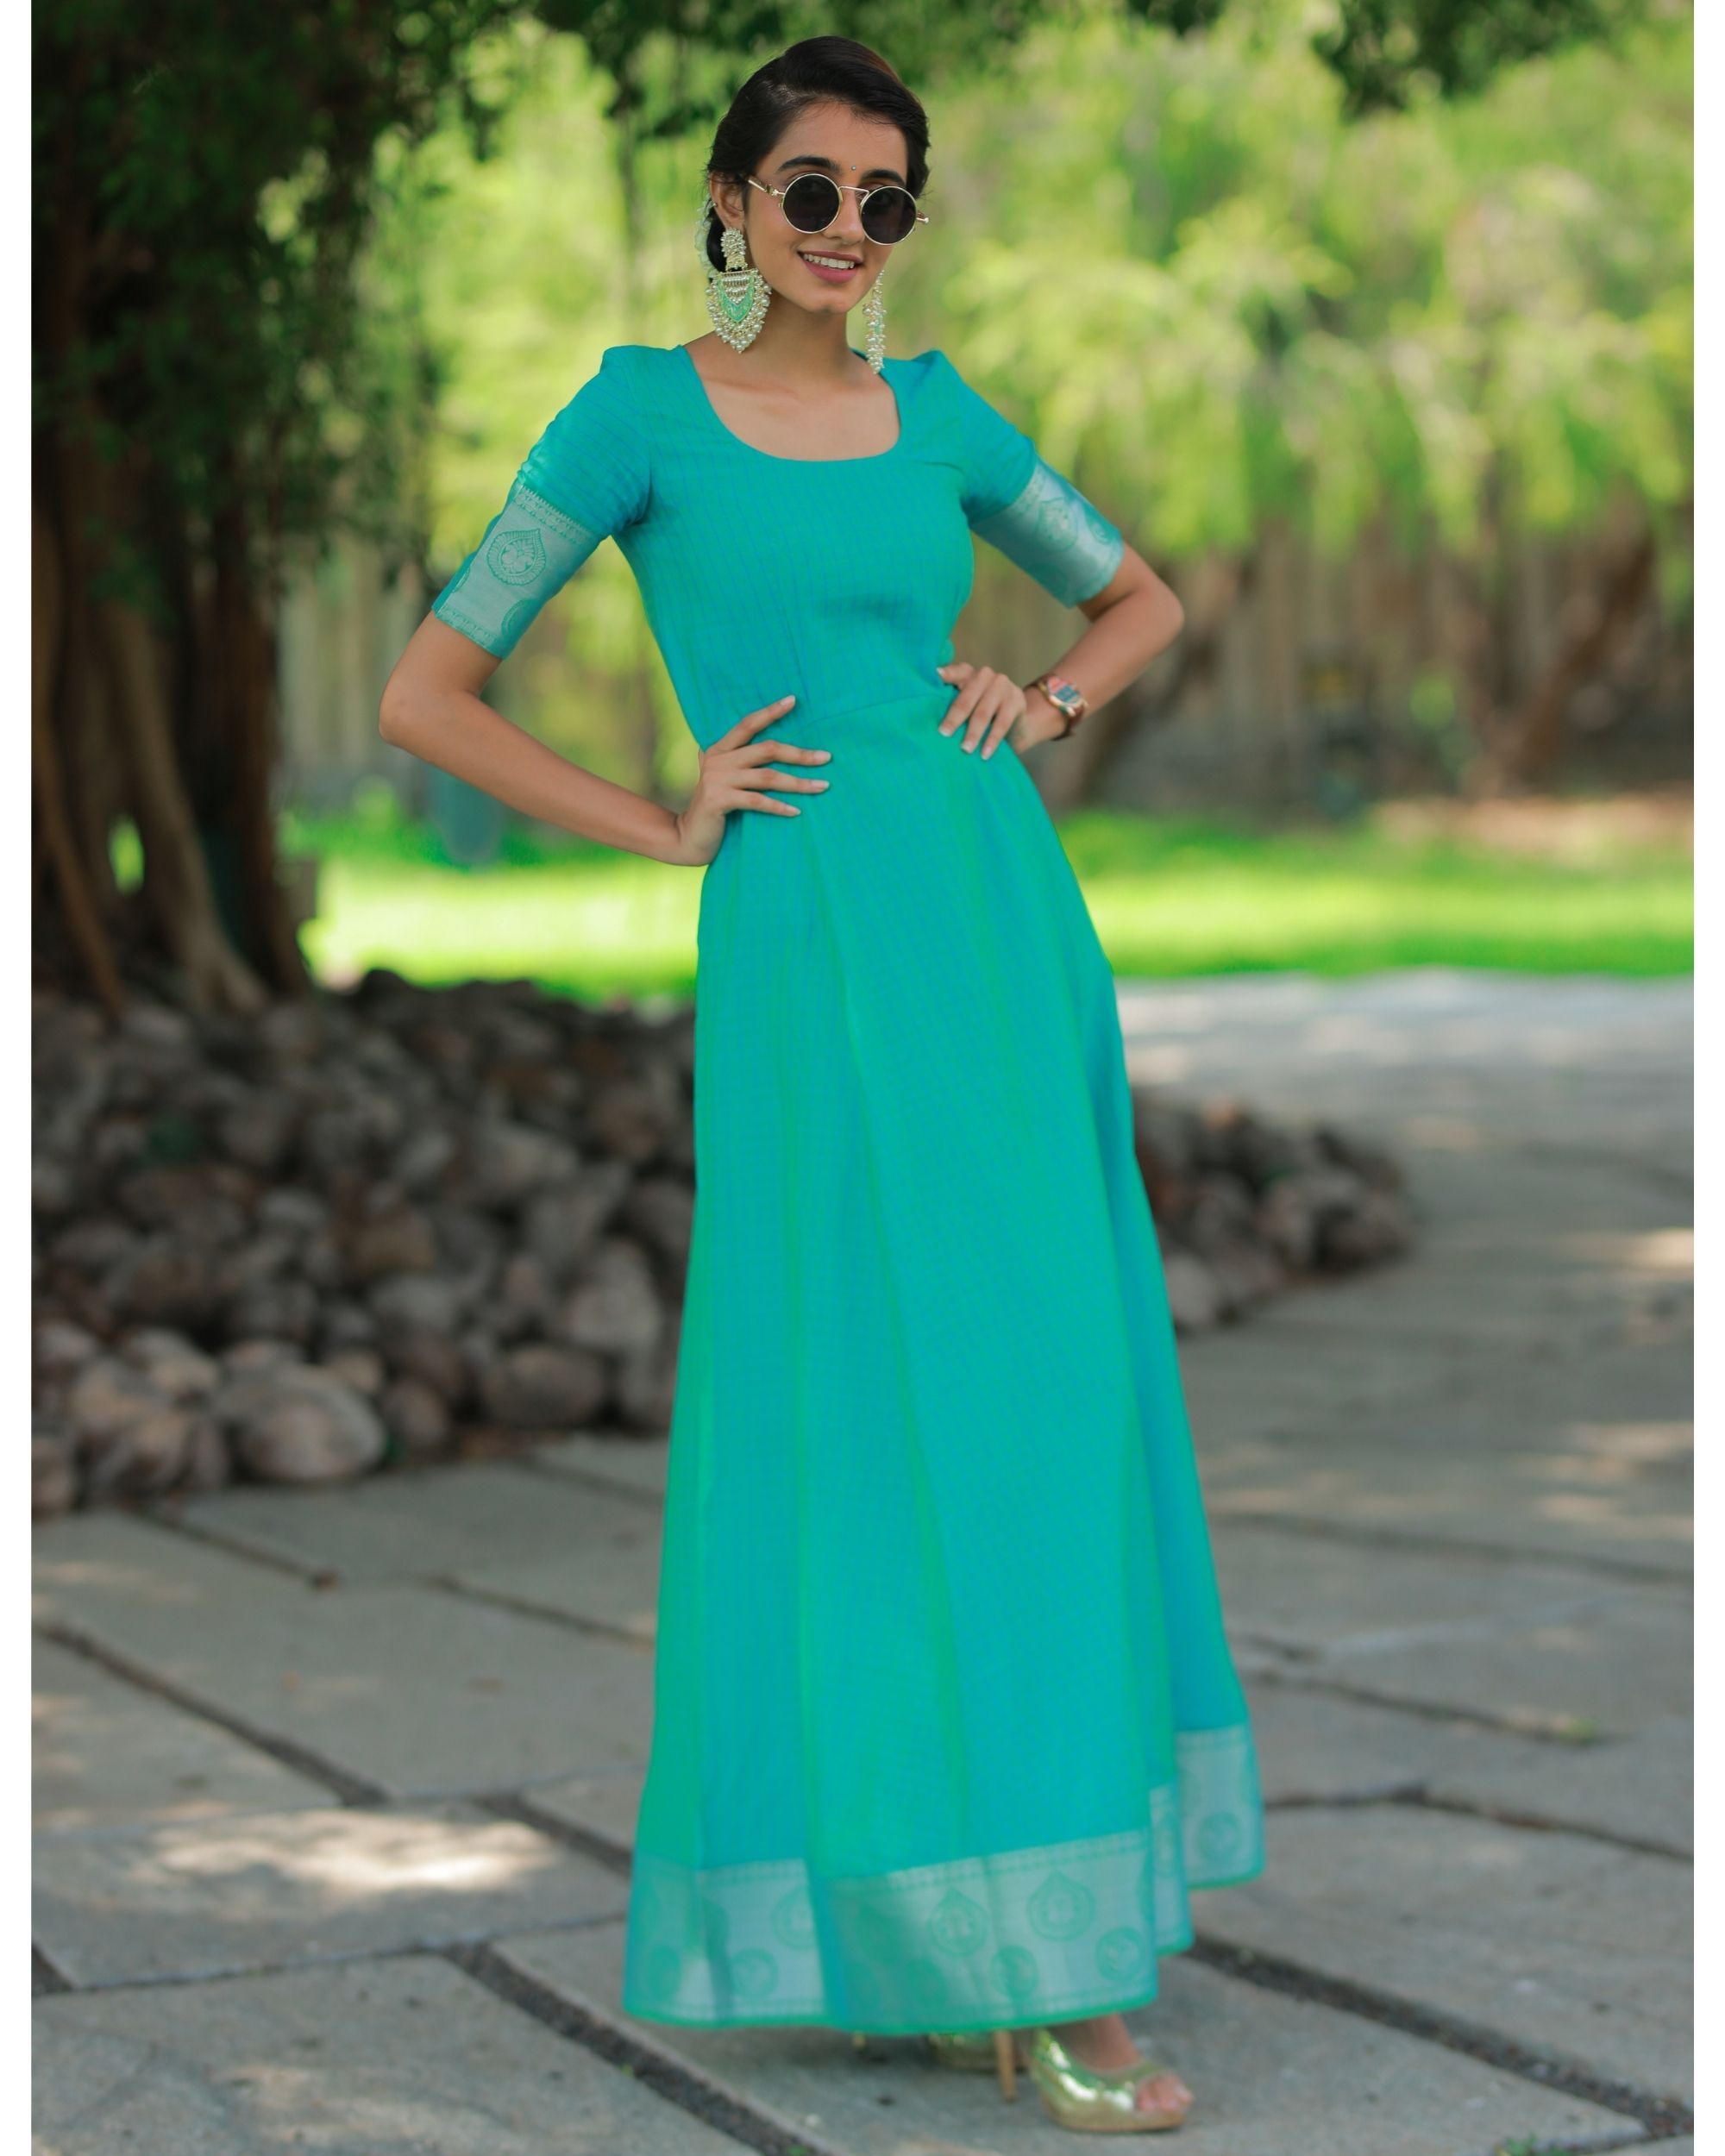 Turquoise checkered maxi dress